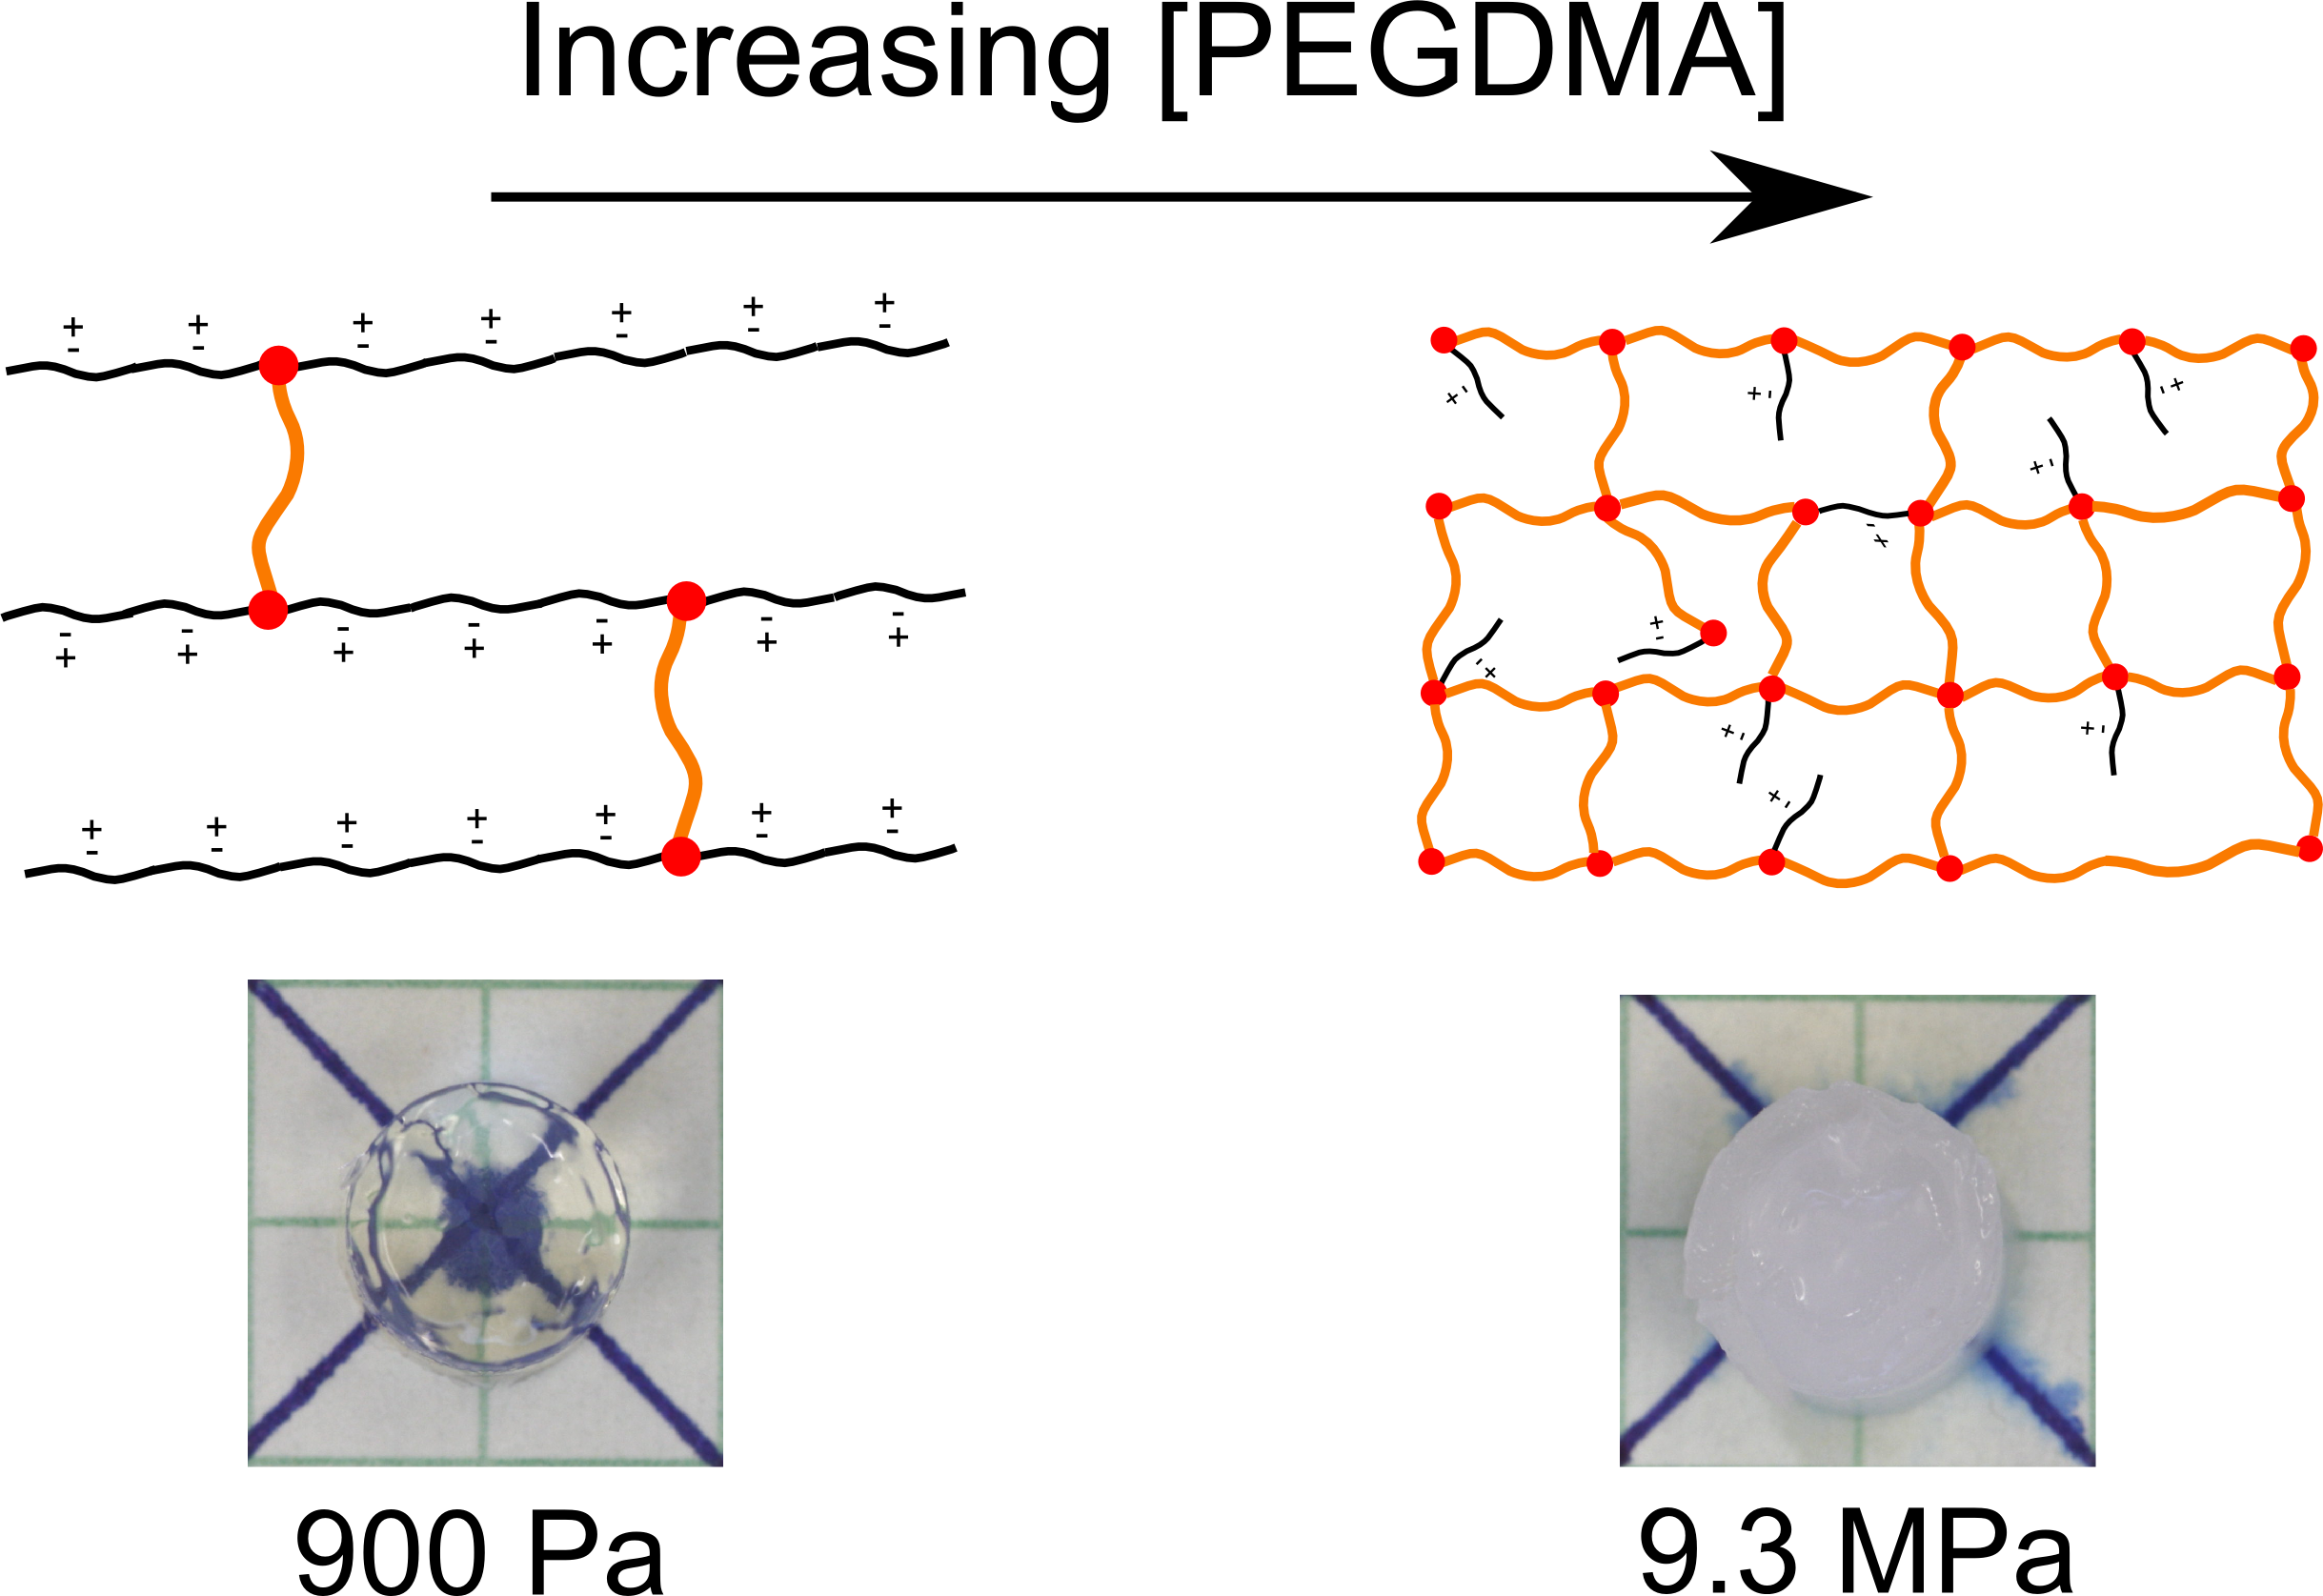 Hydrophilic Zwitterionic Gels